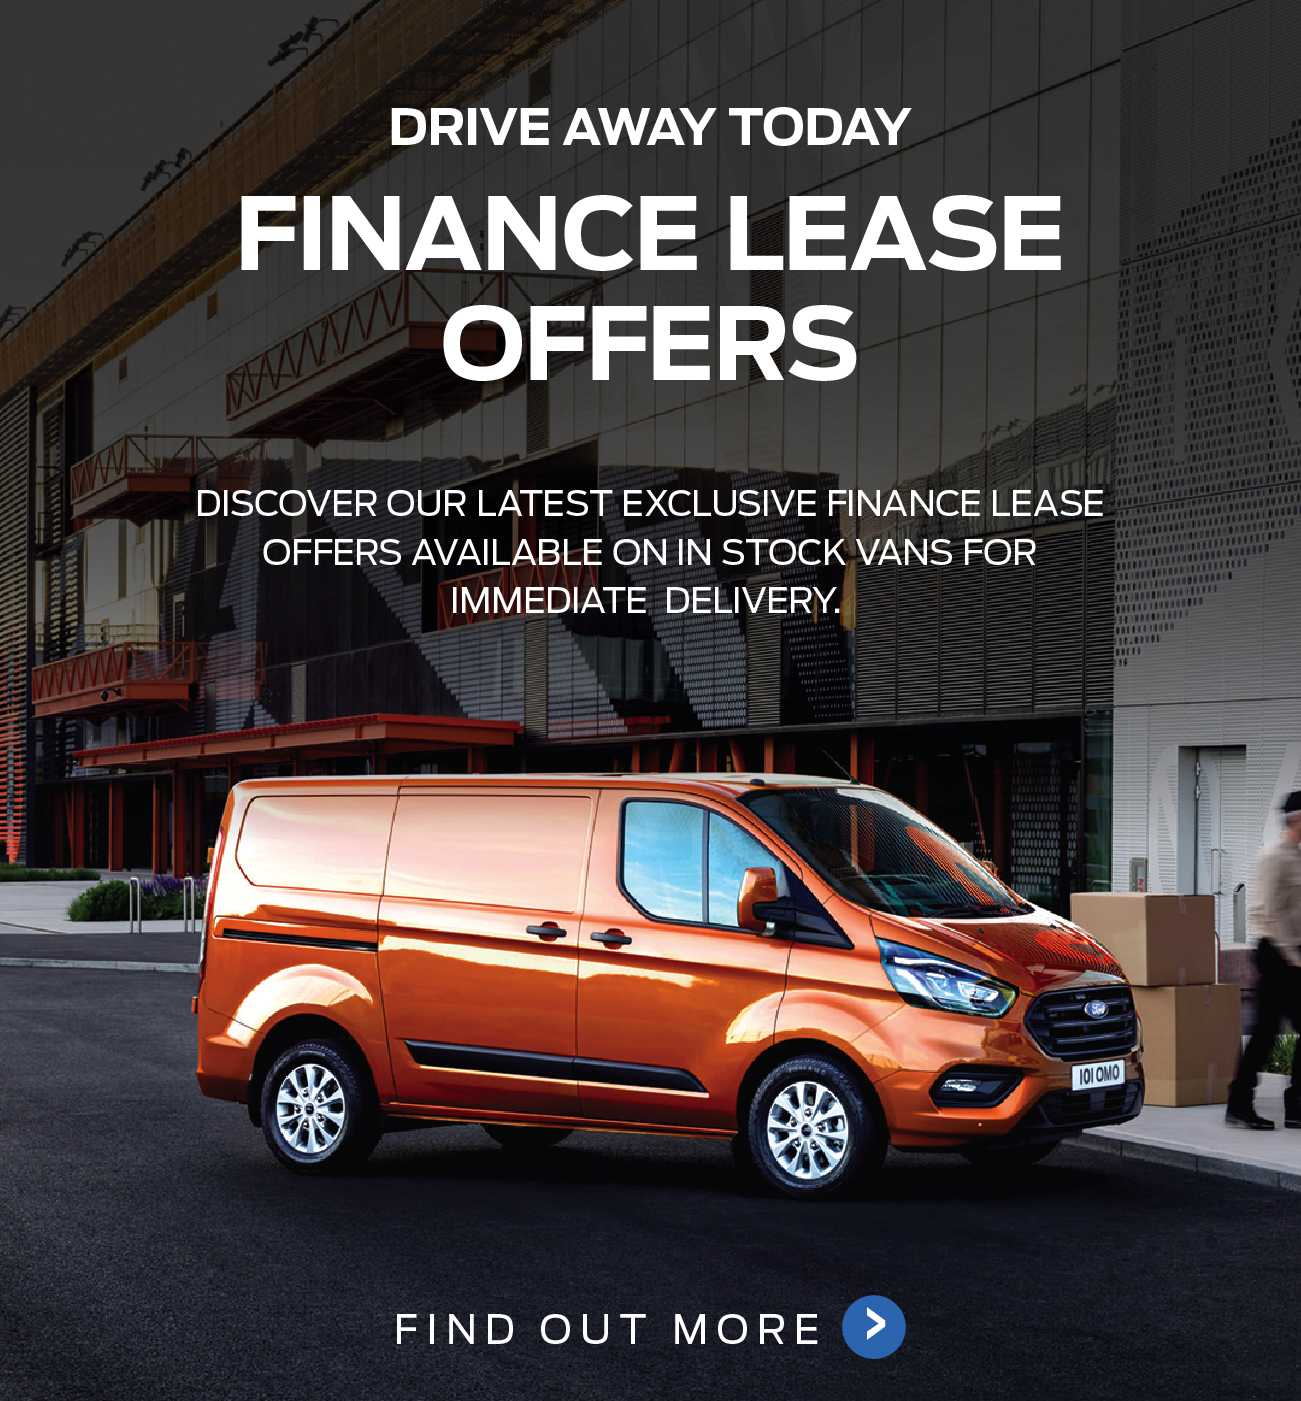 ford Drive Away Today - Finance offers